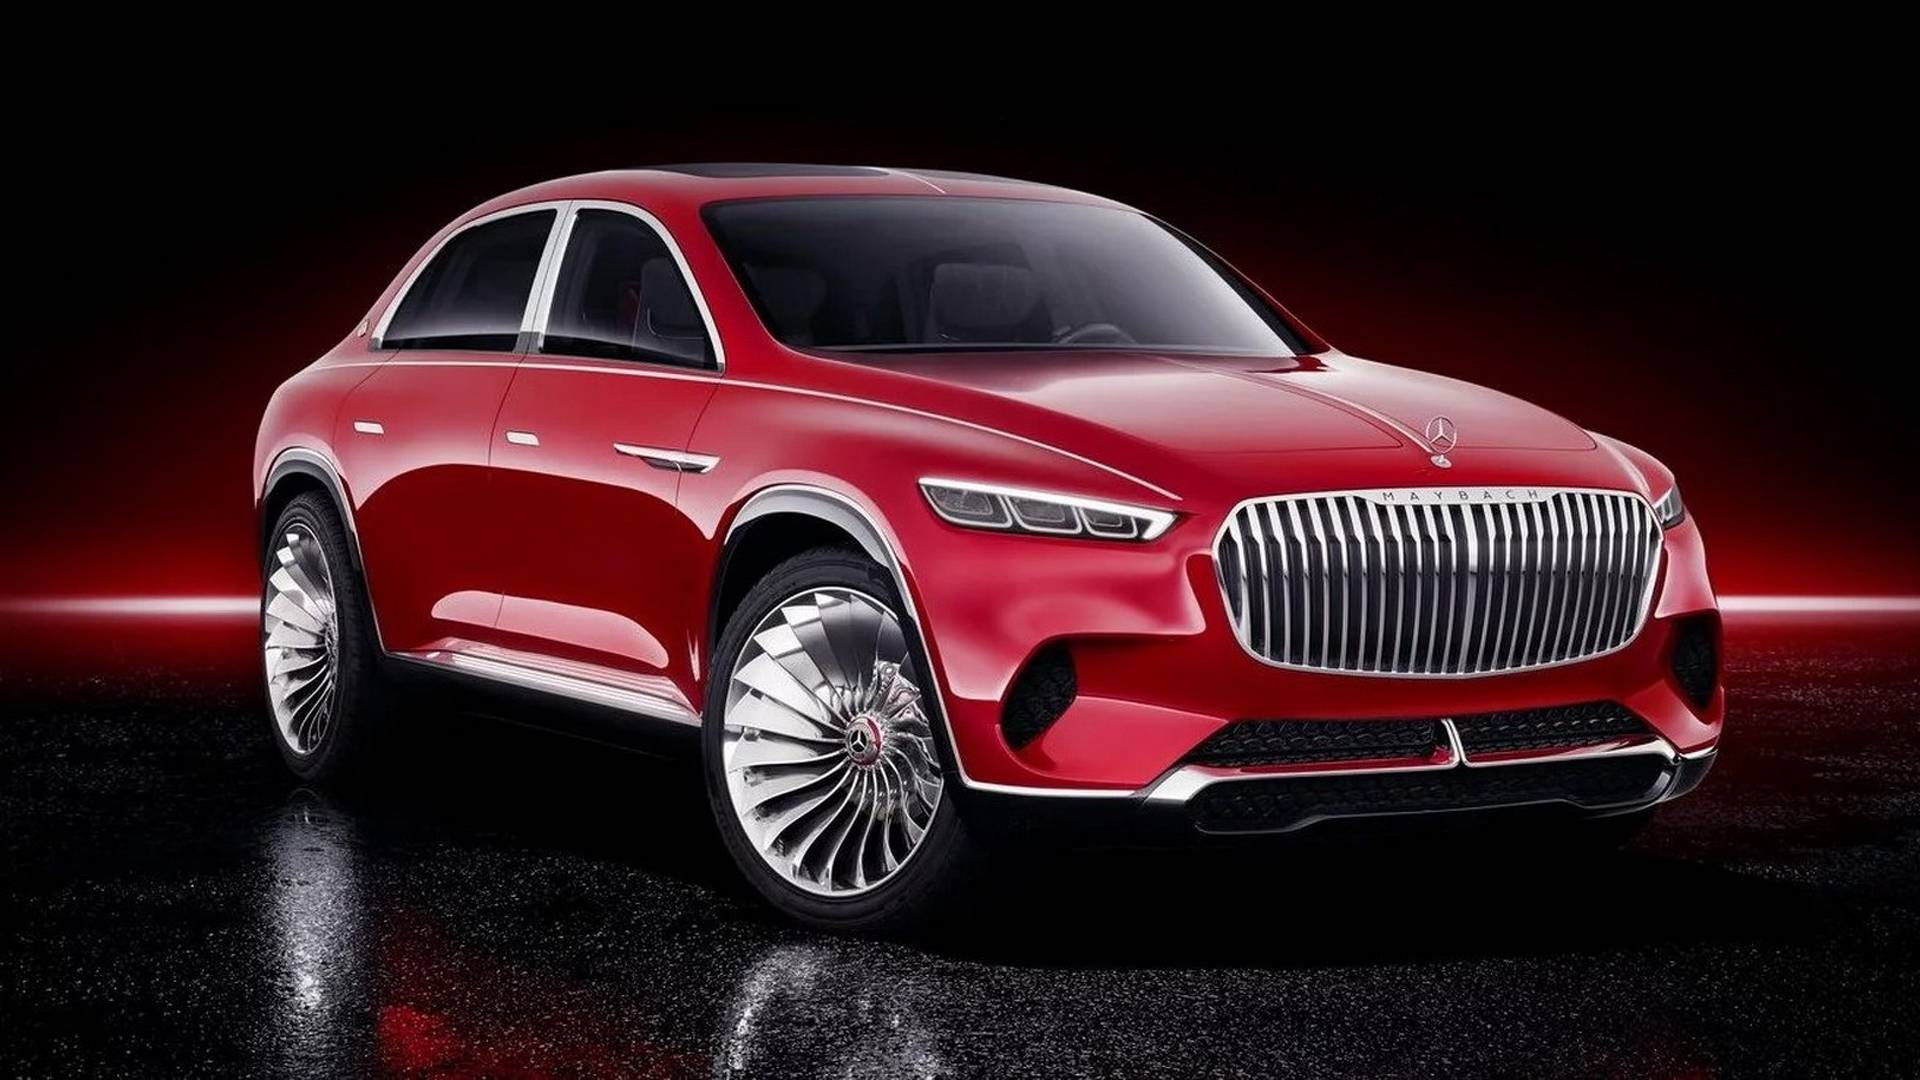 vision-mercedes-maybach-ultimate-luxury-leaked-official-image (2)